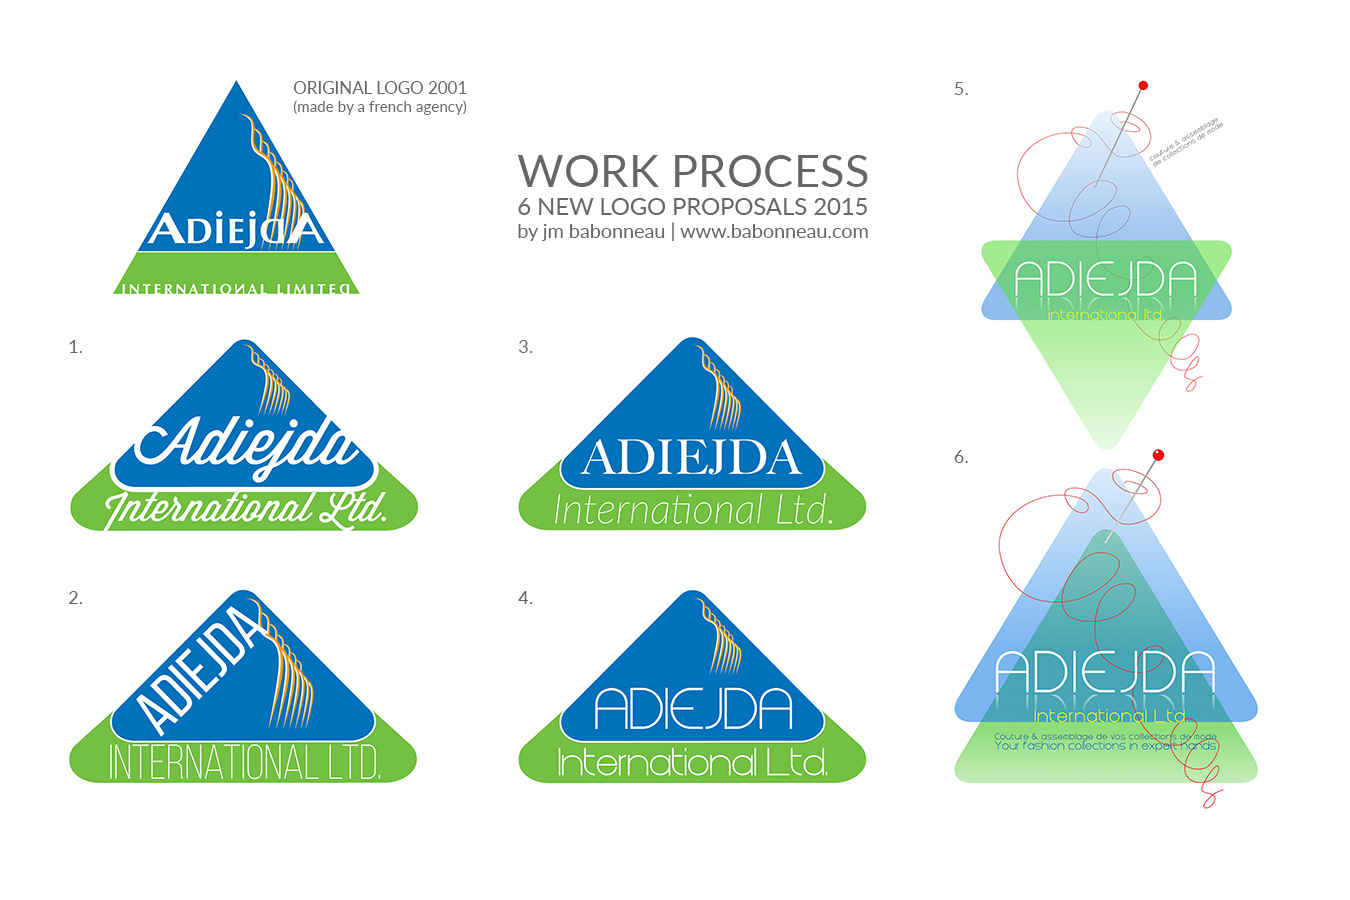 Logo_ADIEJDA_2015_MAKING_PROCESS_01_web.jpg